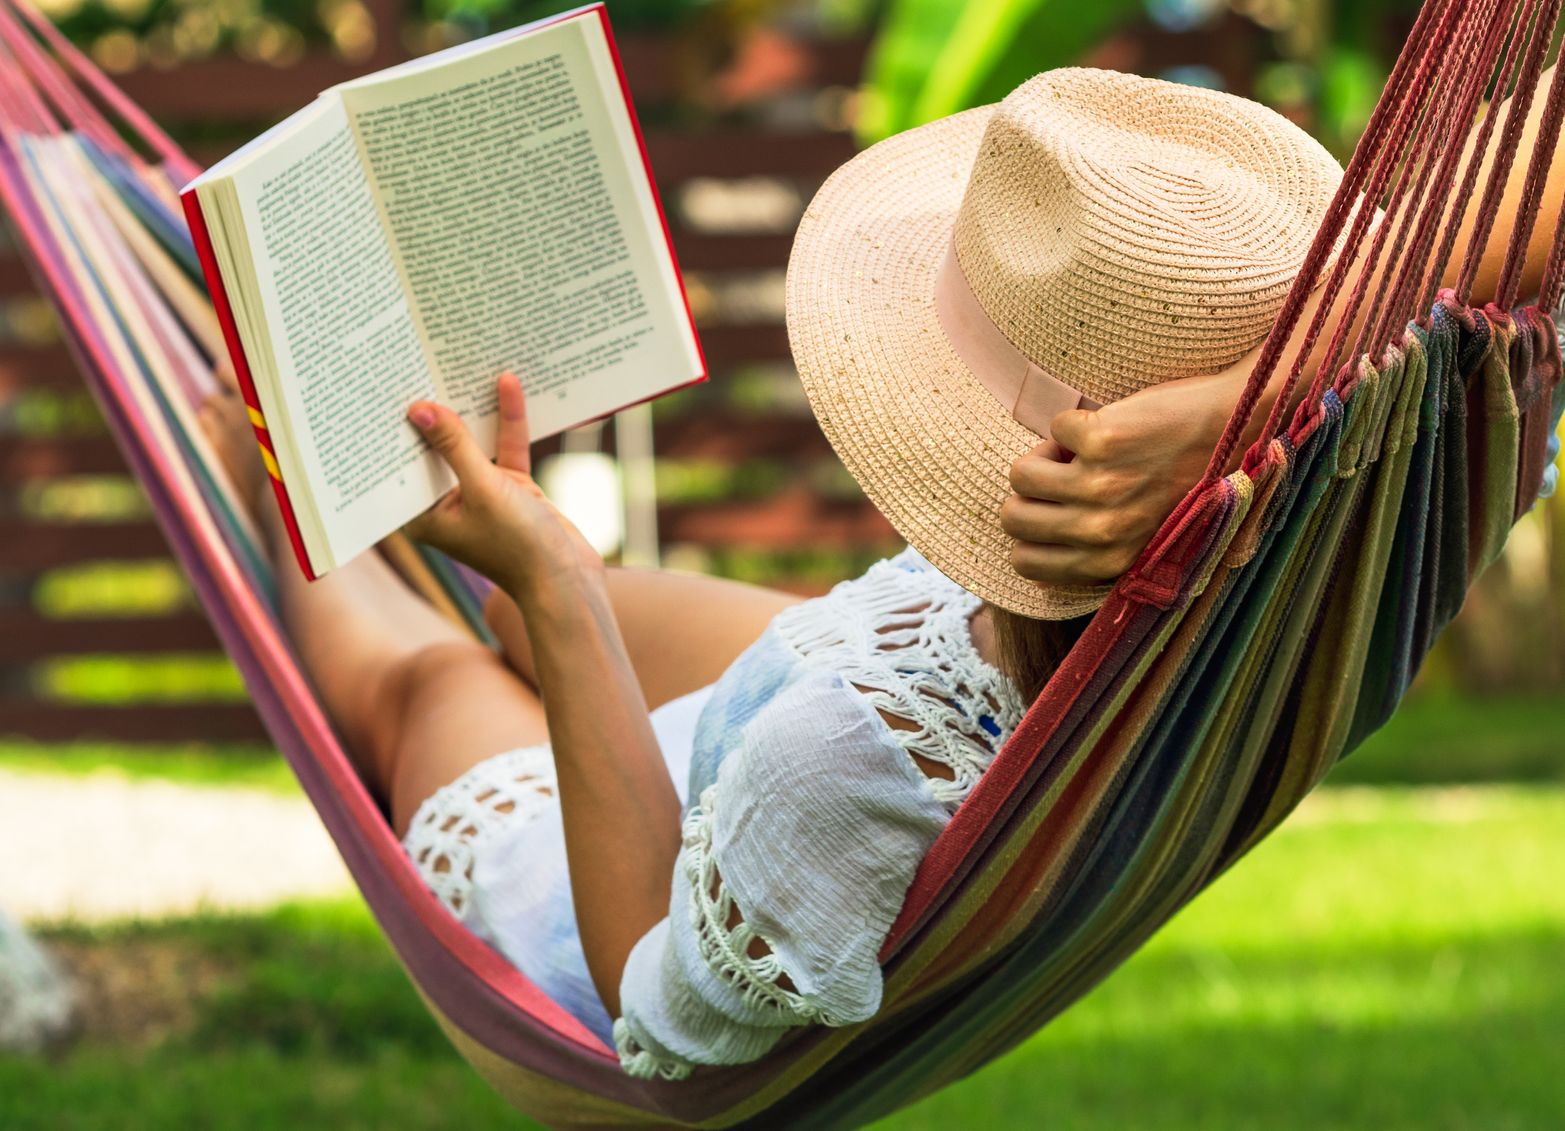 Hammock and swing buying guide